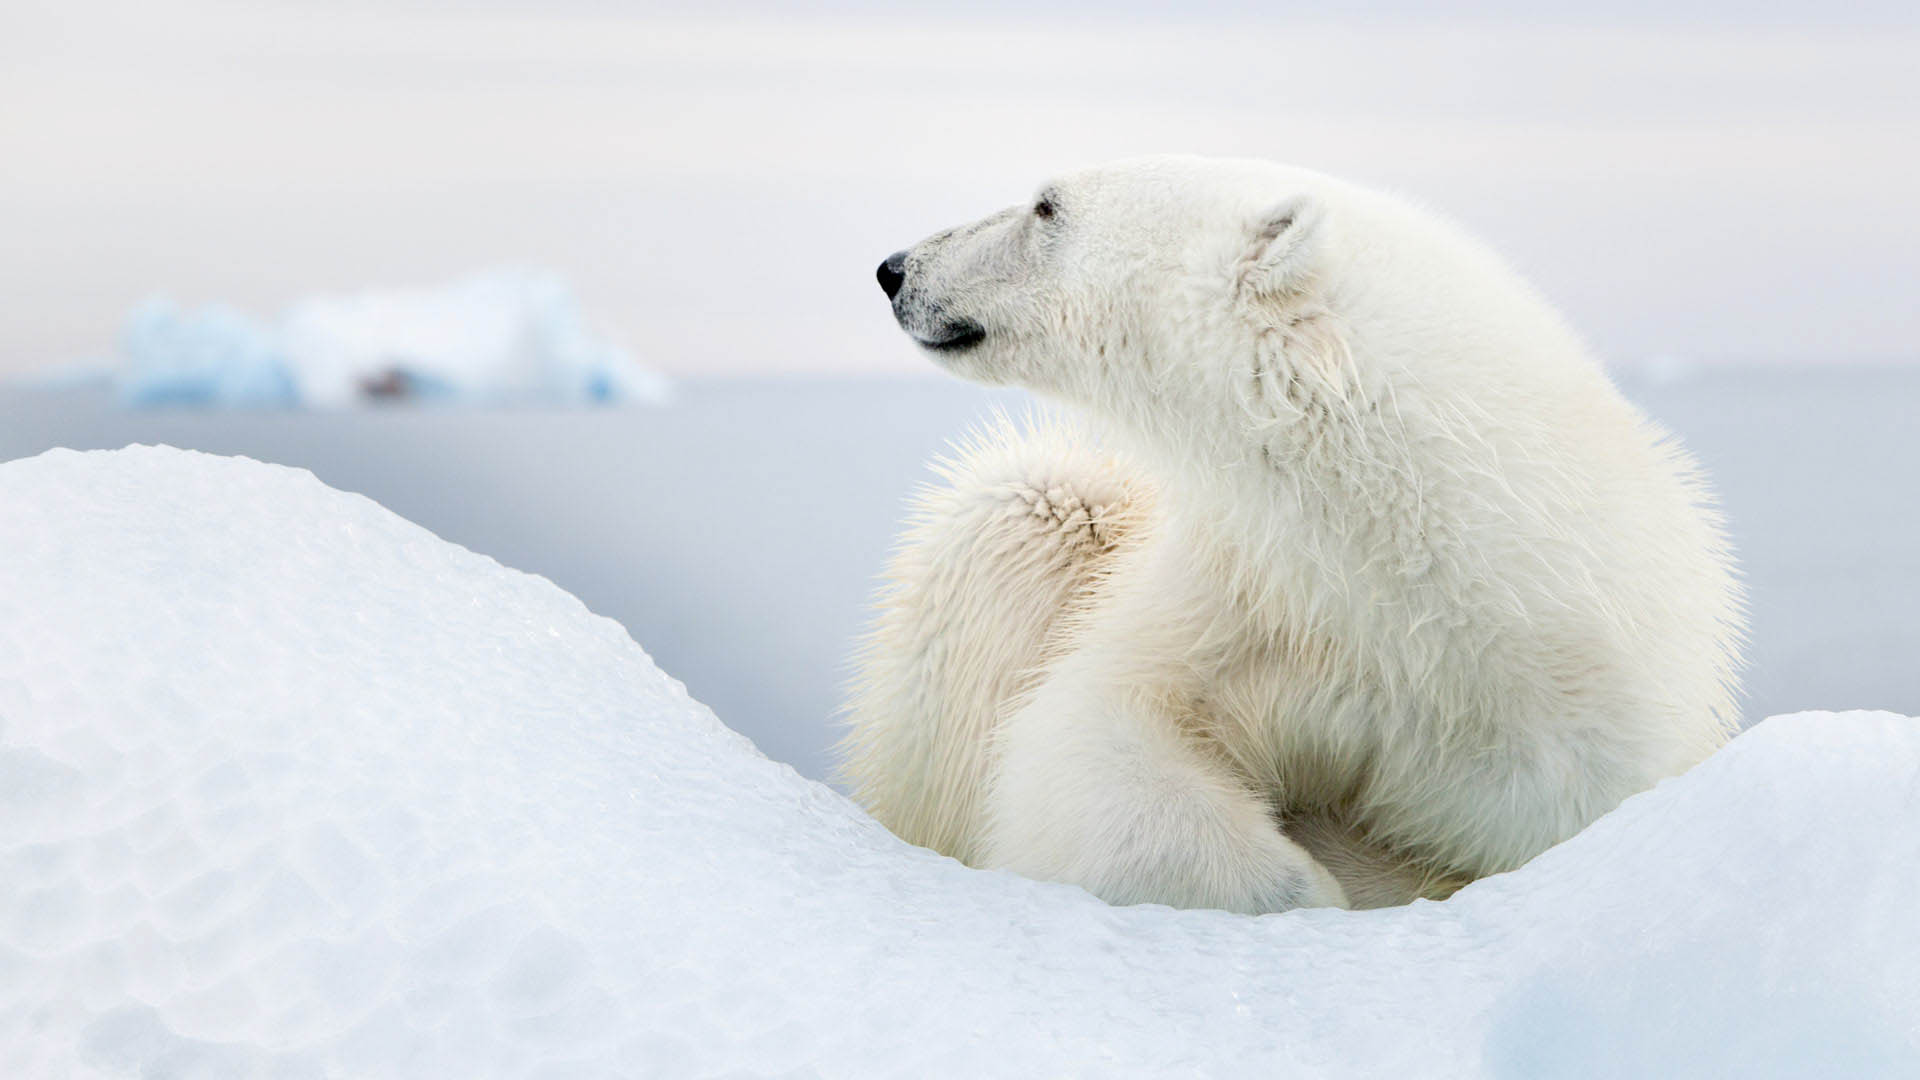 Polar bear close up, Svalbard